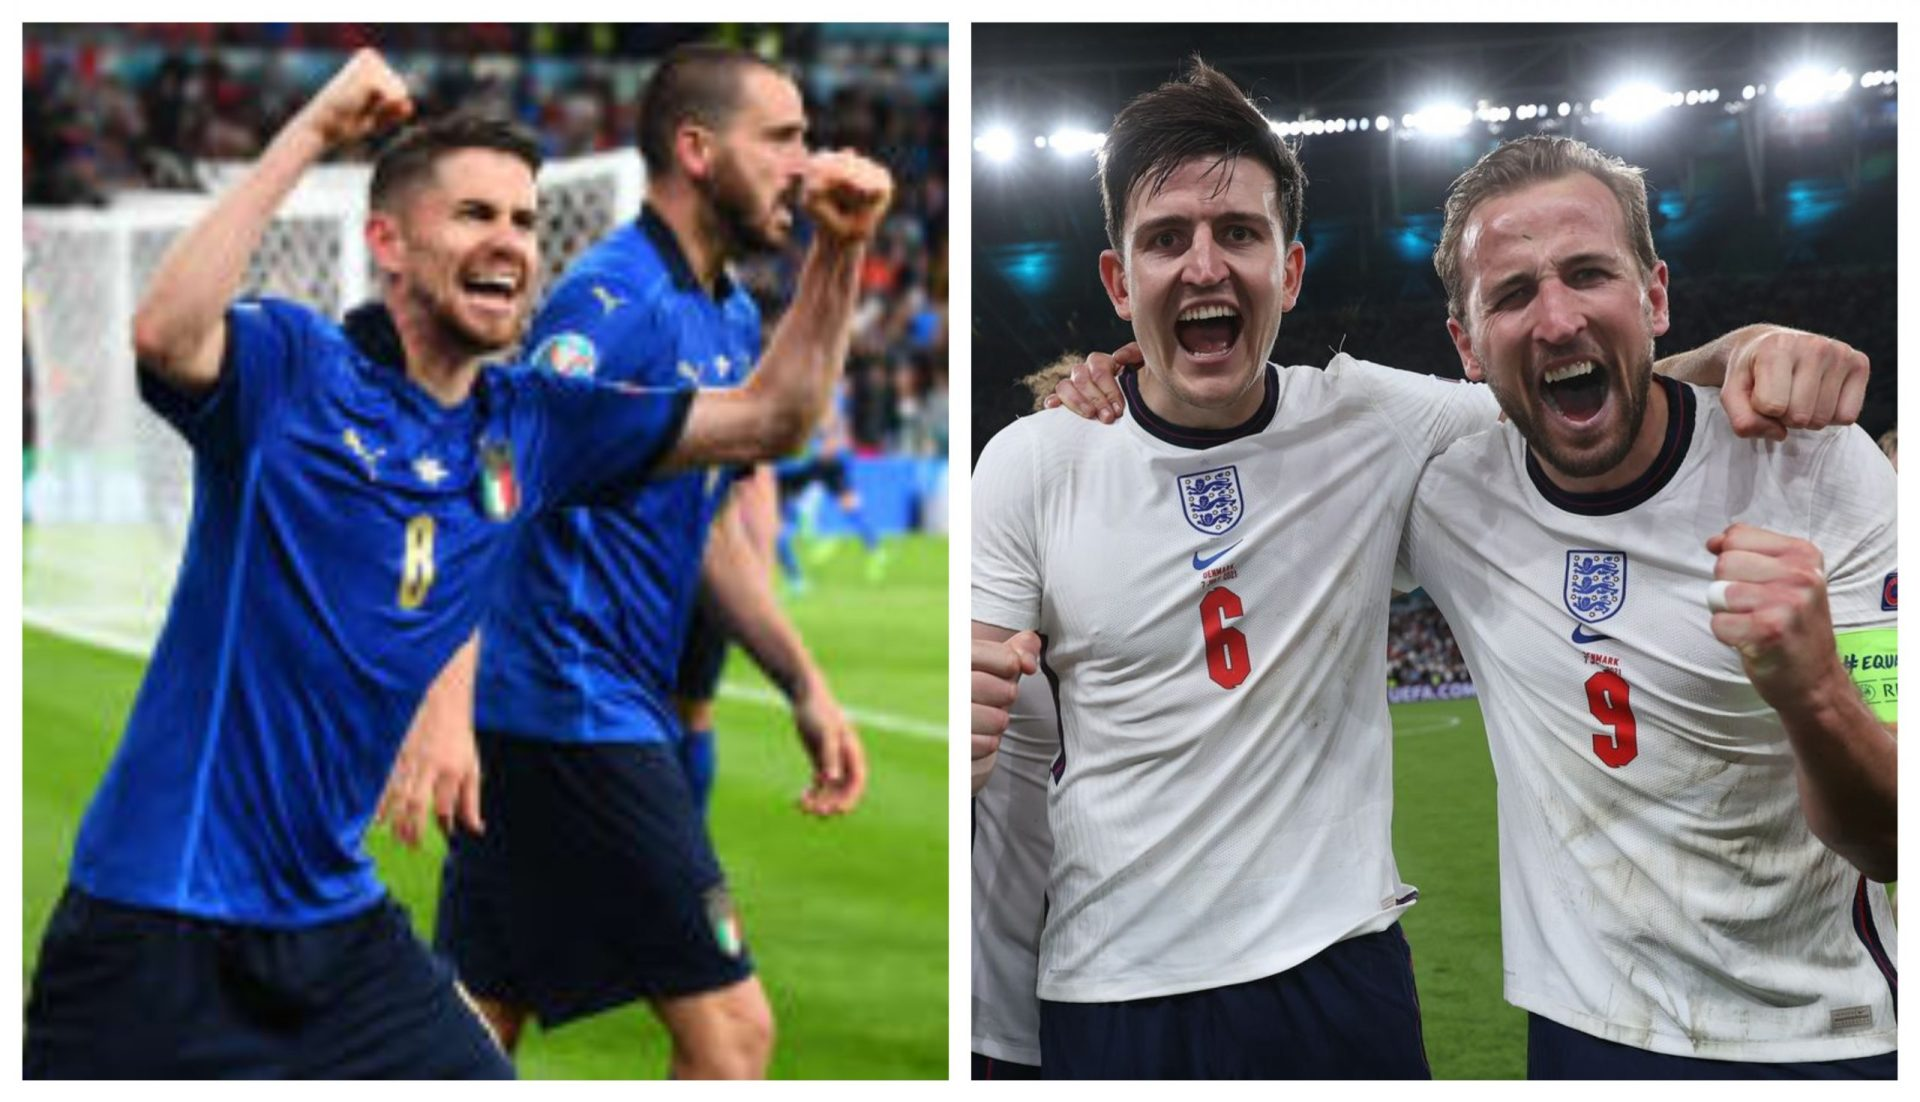 EURO 2020 Final: England vs Italy Odds, Predictions and Analysis - THE SPORTS ROOM